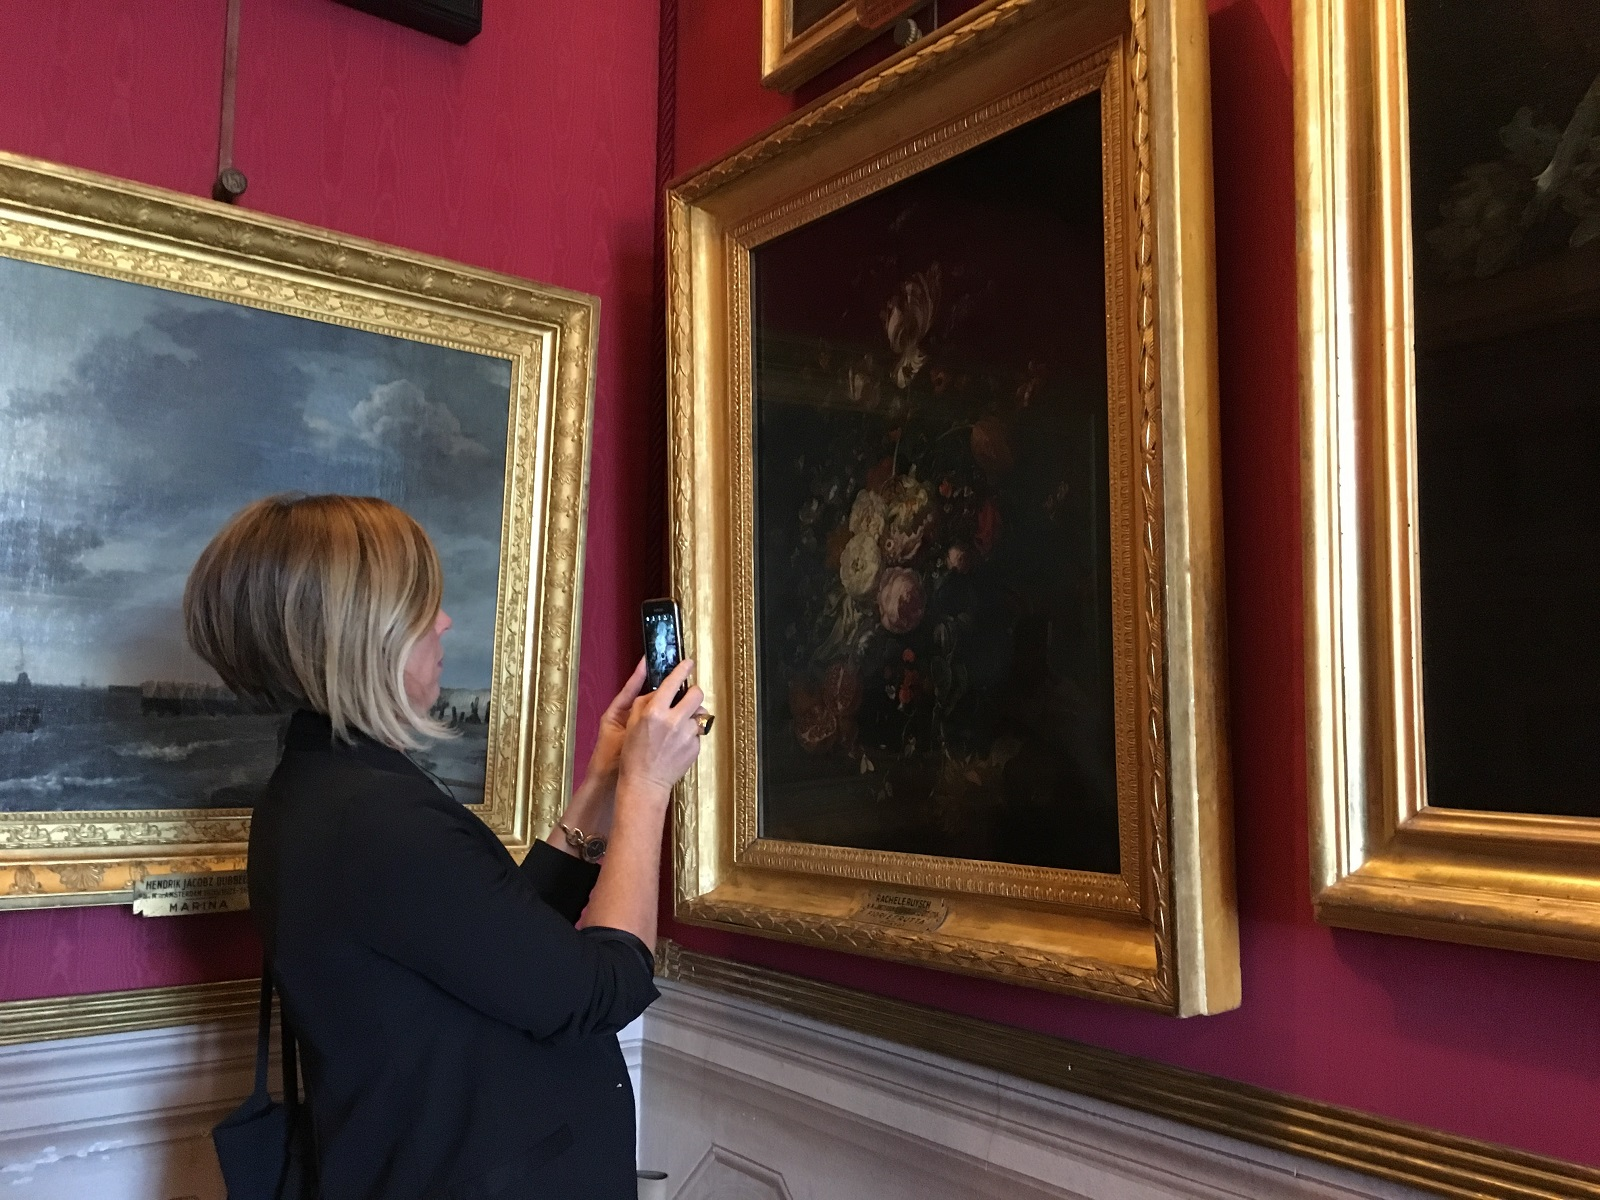 Partnership relations, Jane Adams scouting out 'Art hopefuls' in Florence's museums